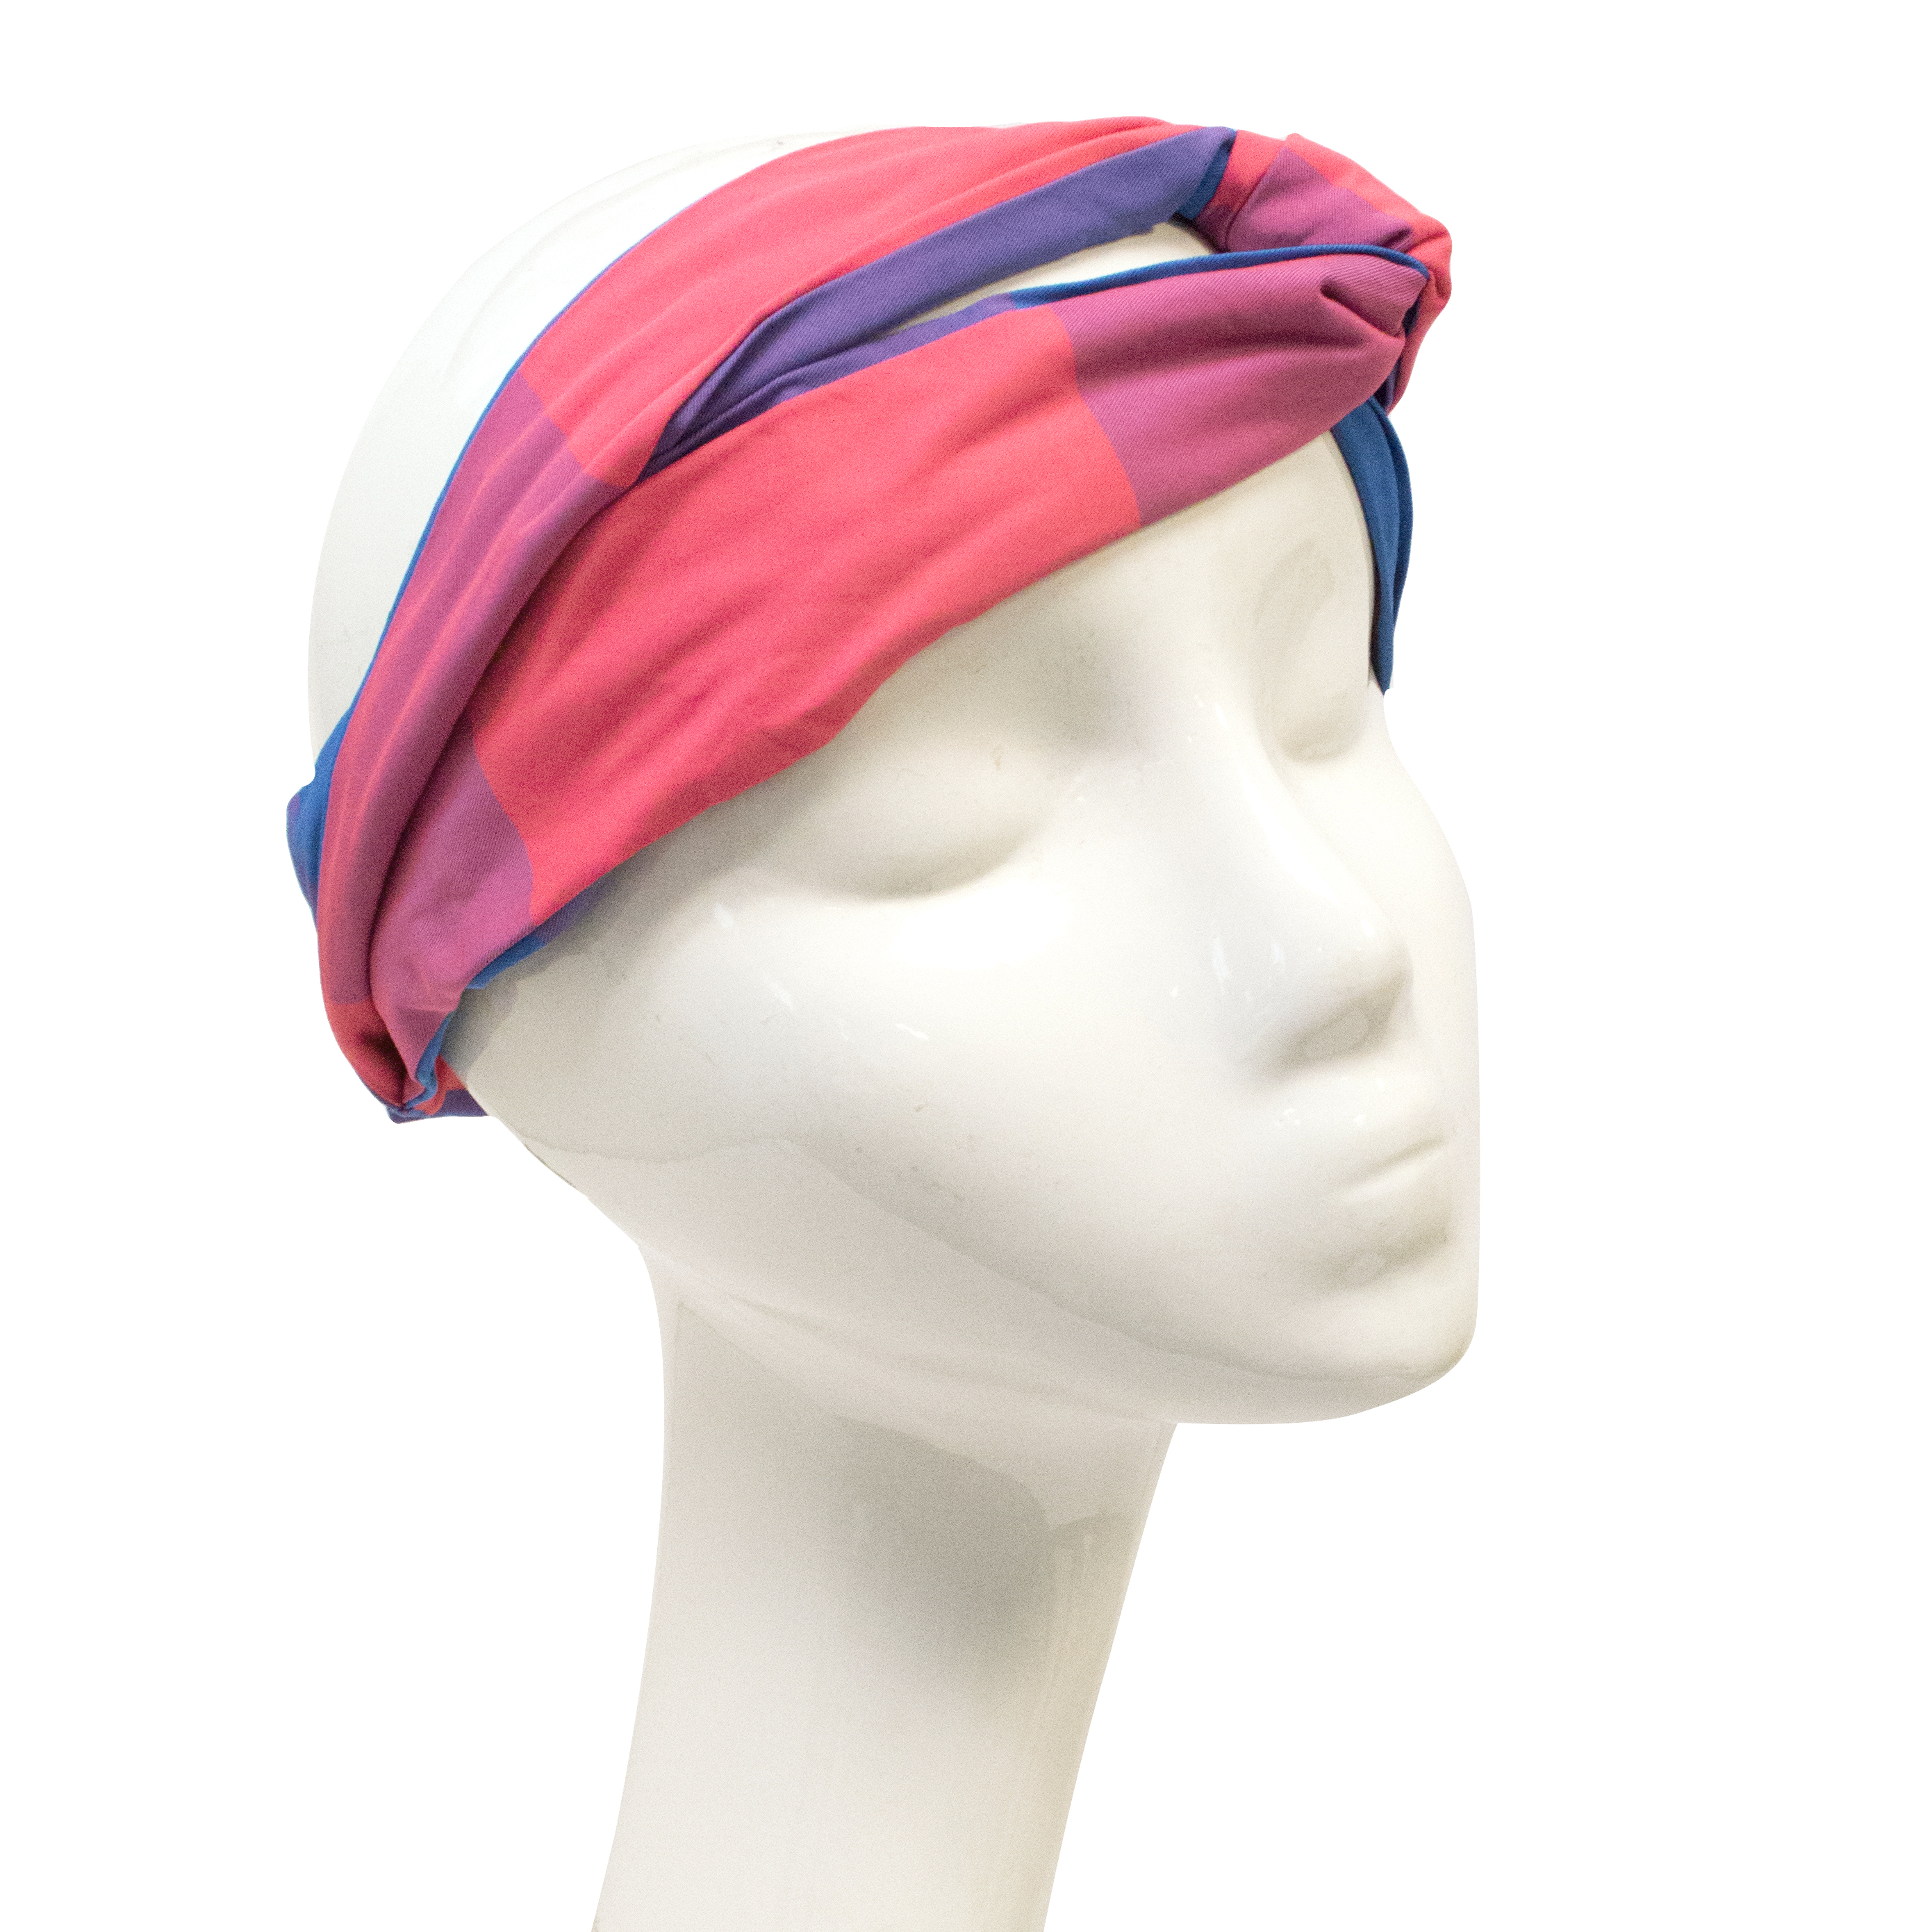 Marc by Marc Jacobs Pink and blue Headband